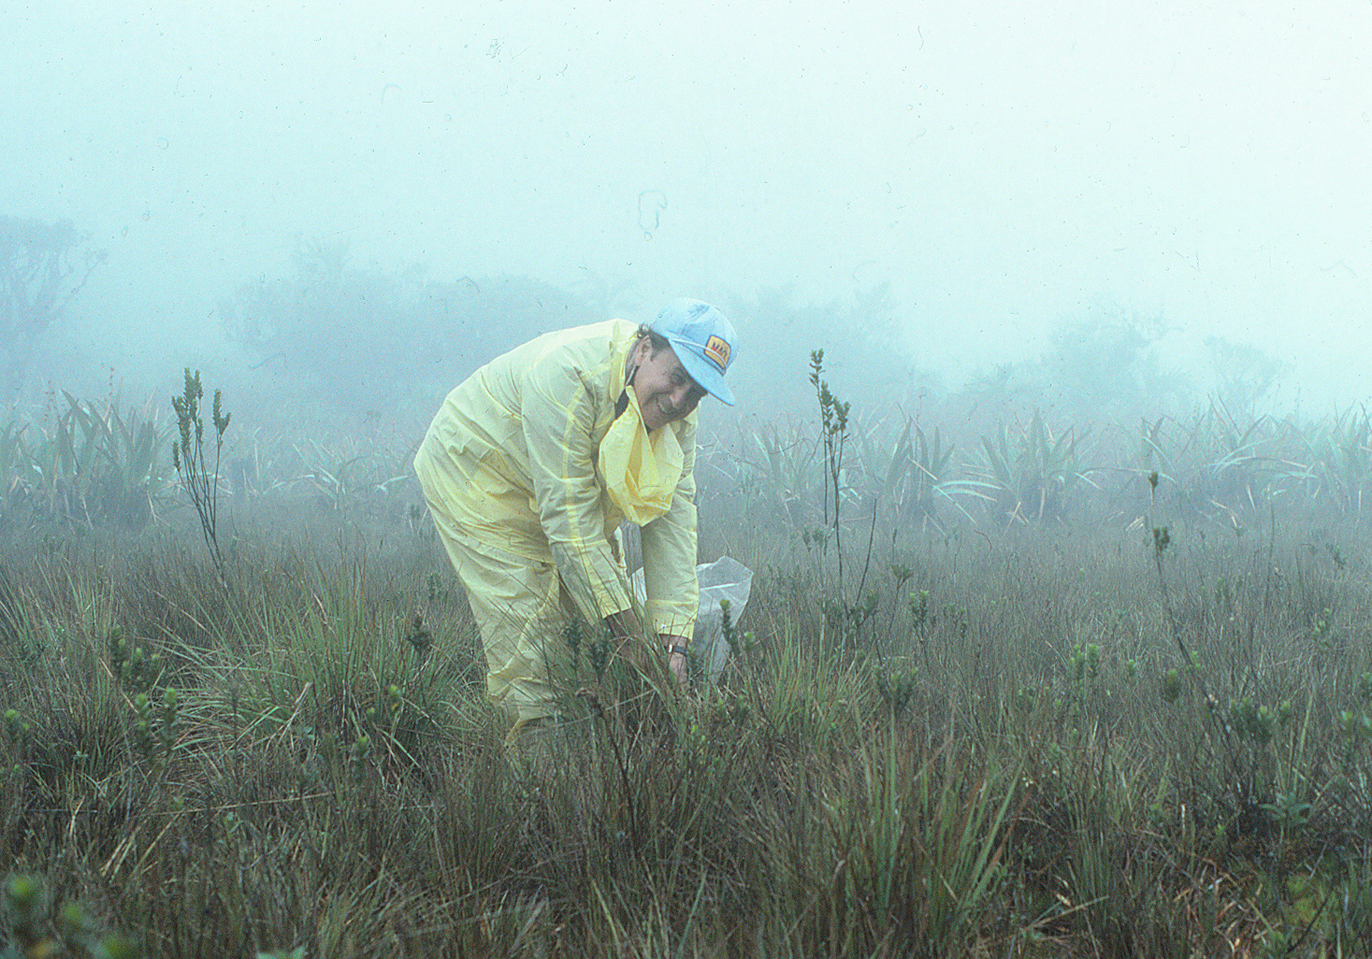 Julian Steyermark in 1982. Photo by S. A. Mori.